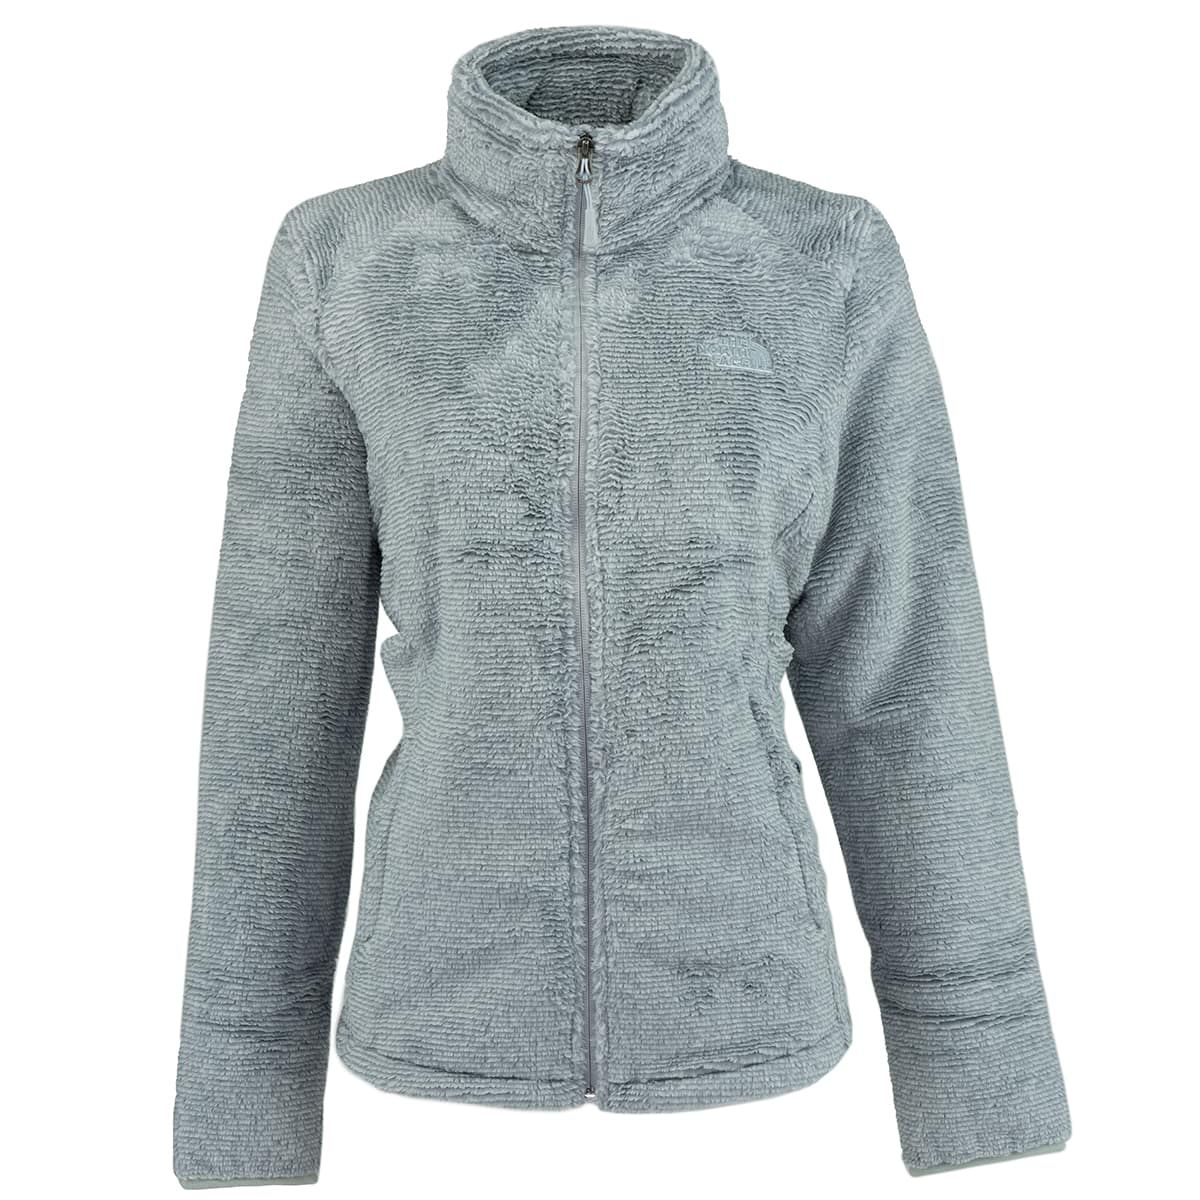 The North Face Women s Osito 2 Fleece Jacket  62.99 Ebay ... ab3d77307